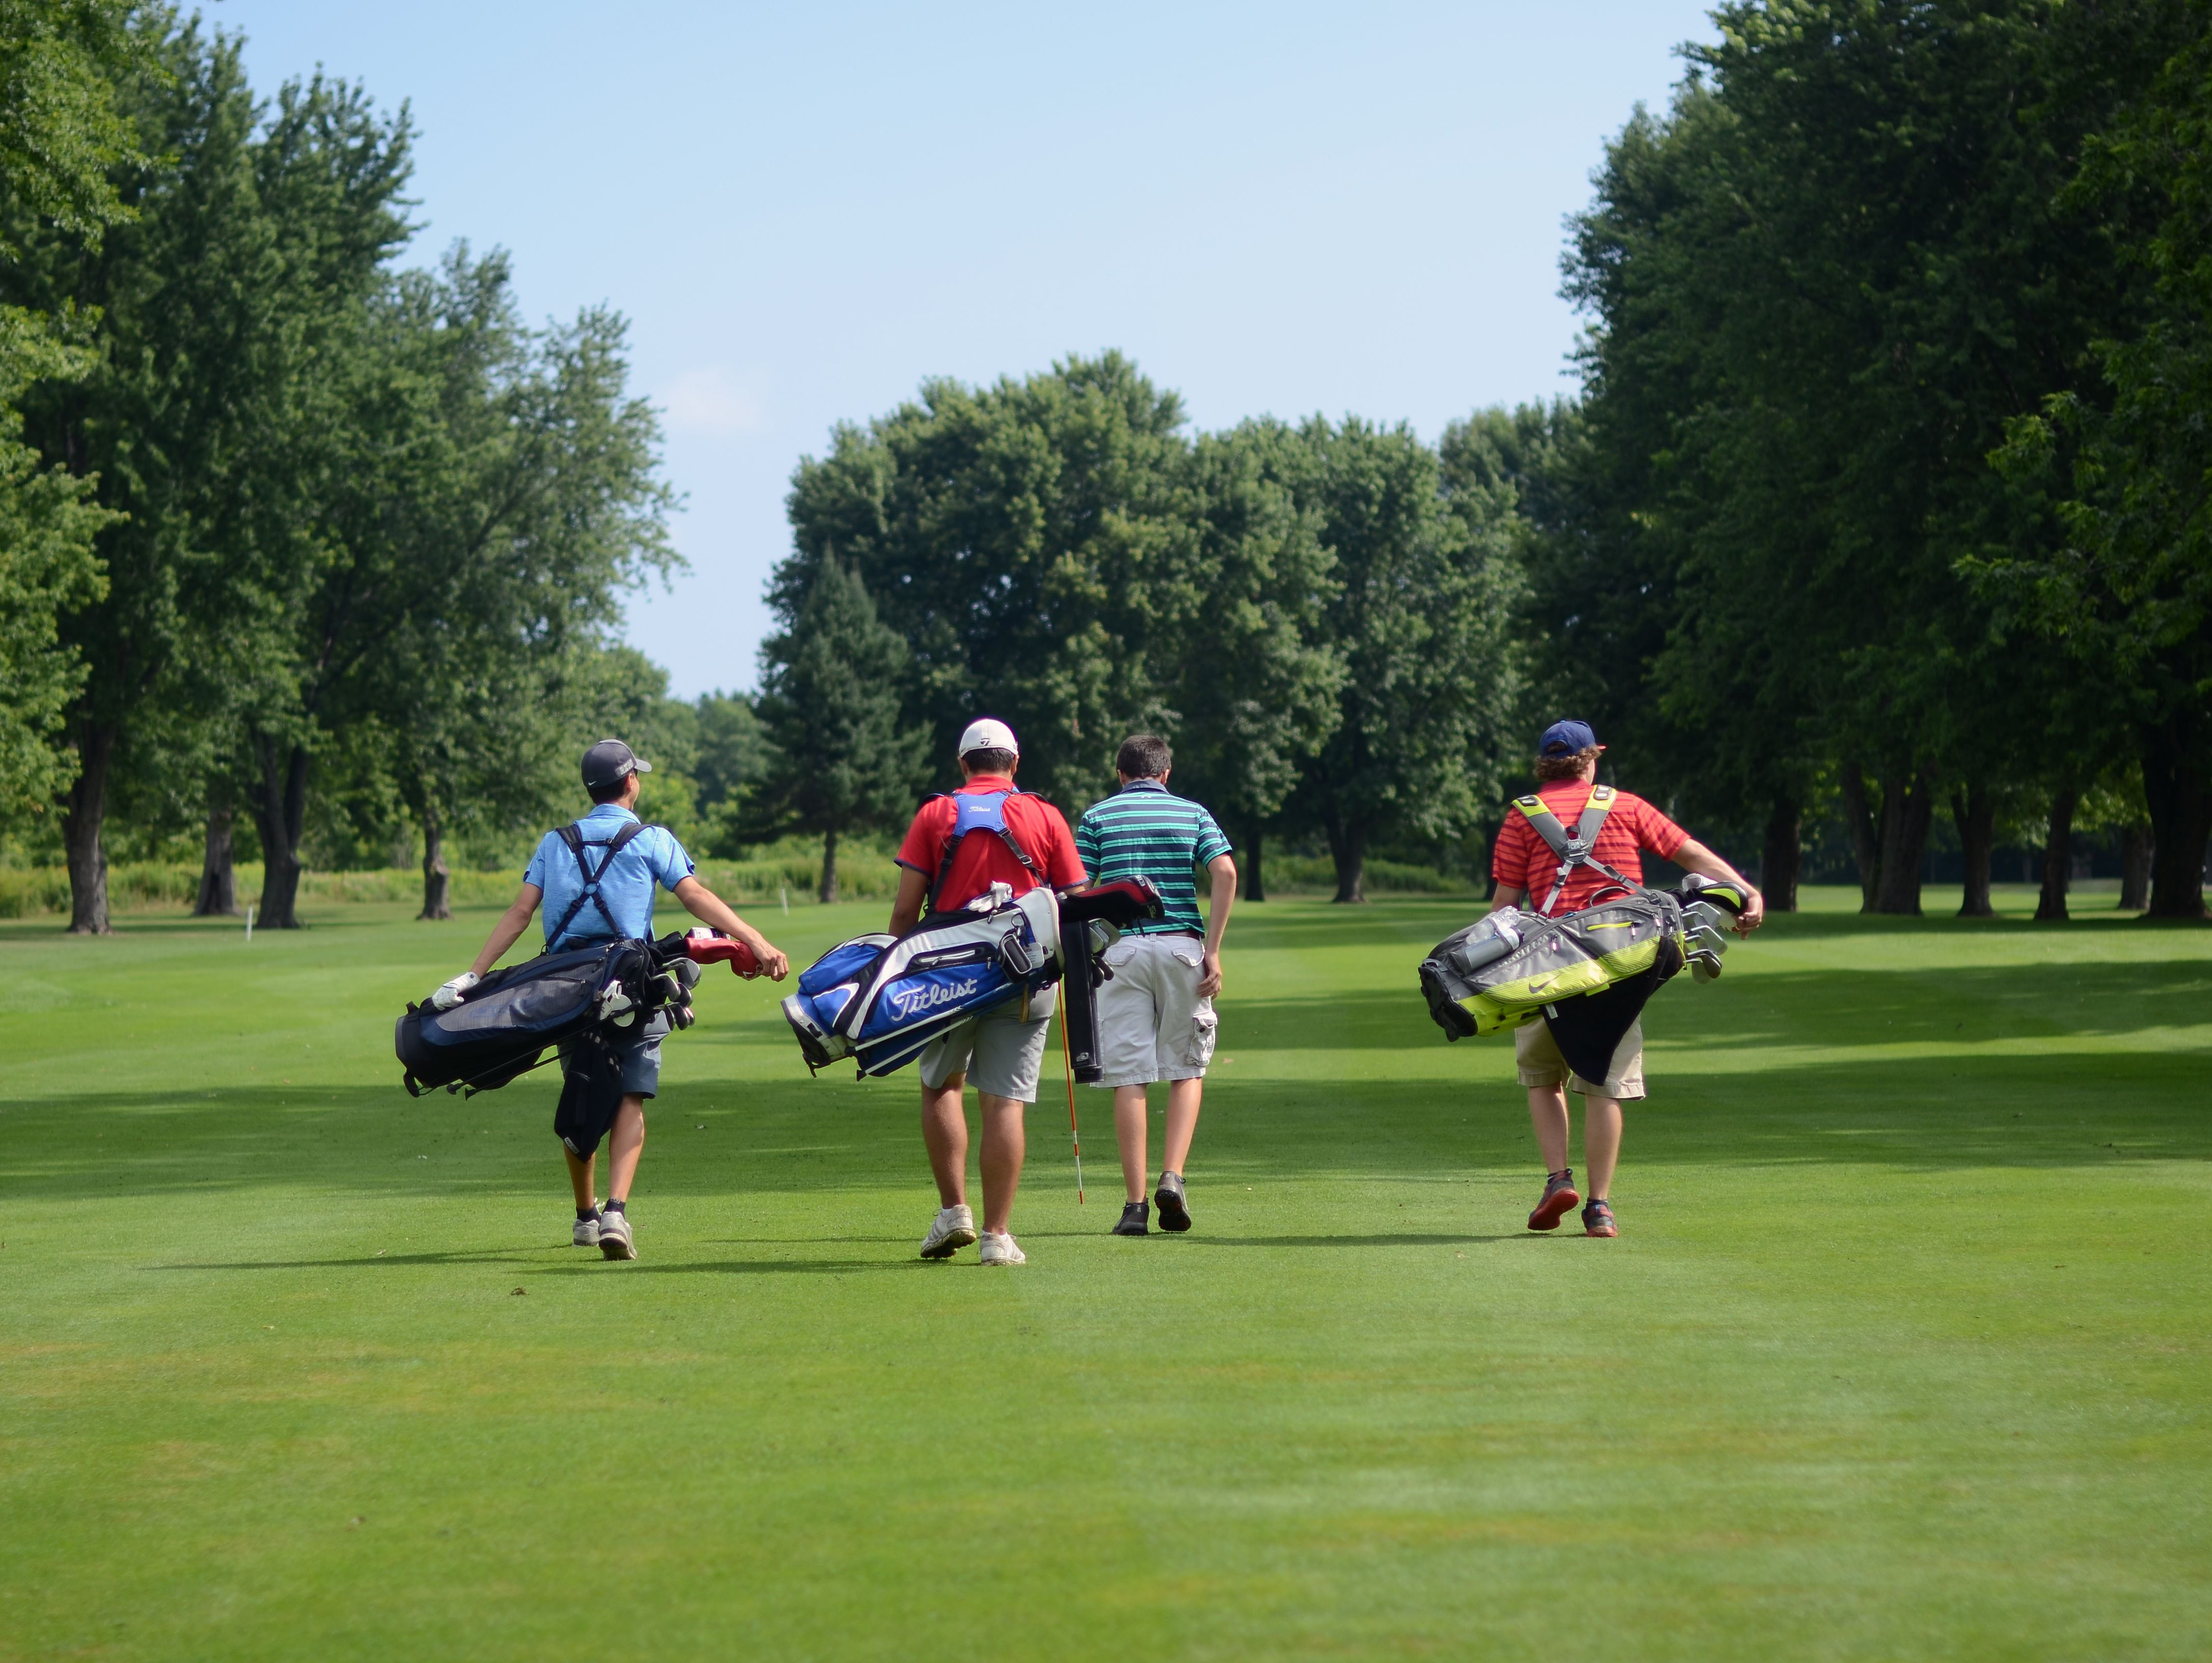 Golfers head down a fairway Monday, Aug 1, during the Tournament of Champions at the Port Huron Elks Golf Course.